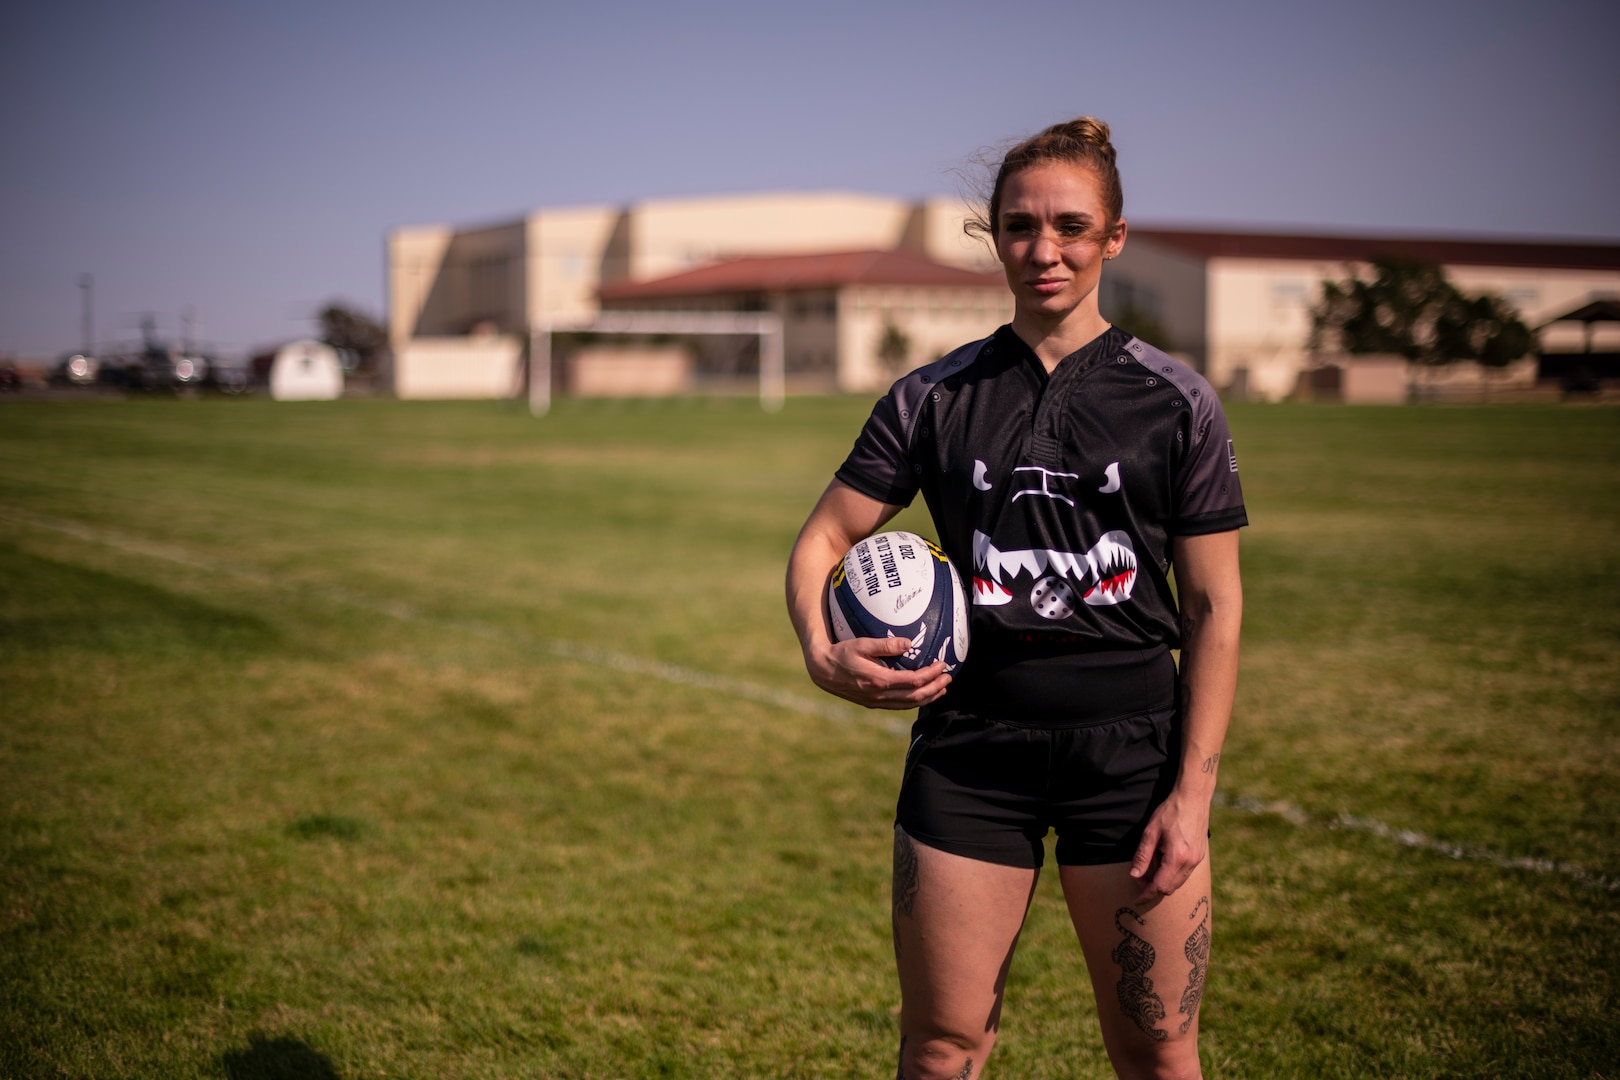 A woman stand on a soccer field holding a rugby ball.